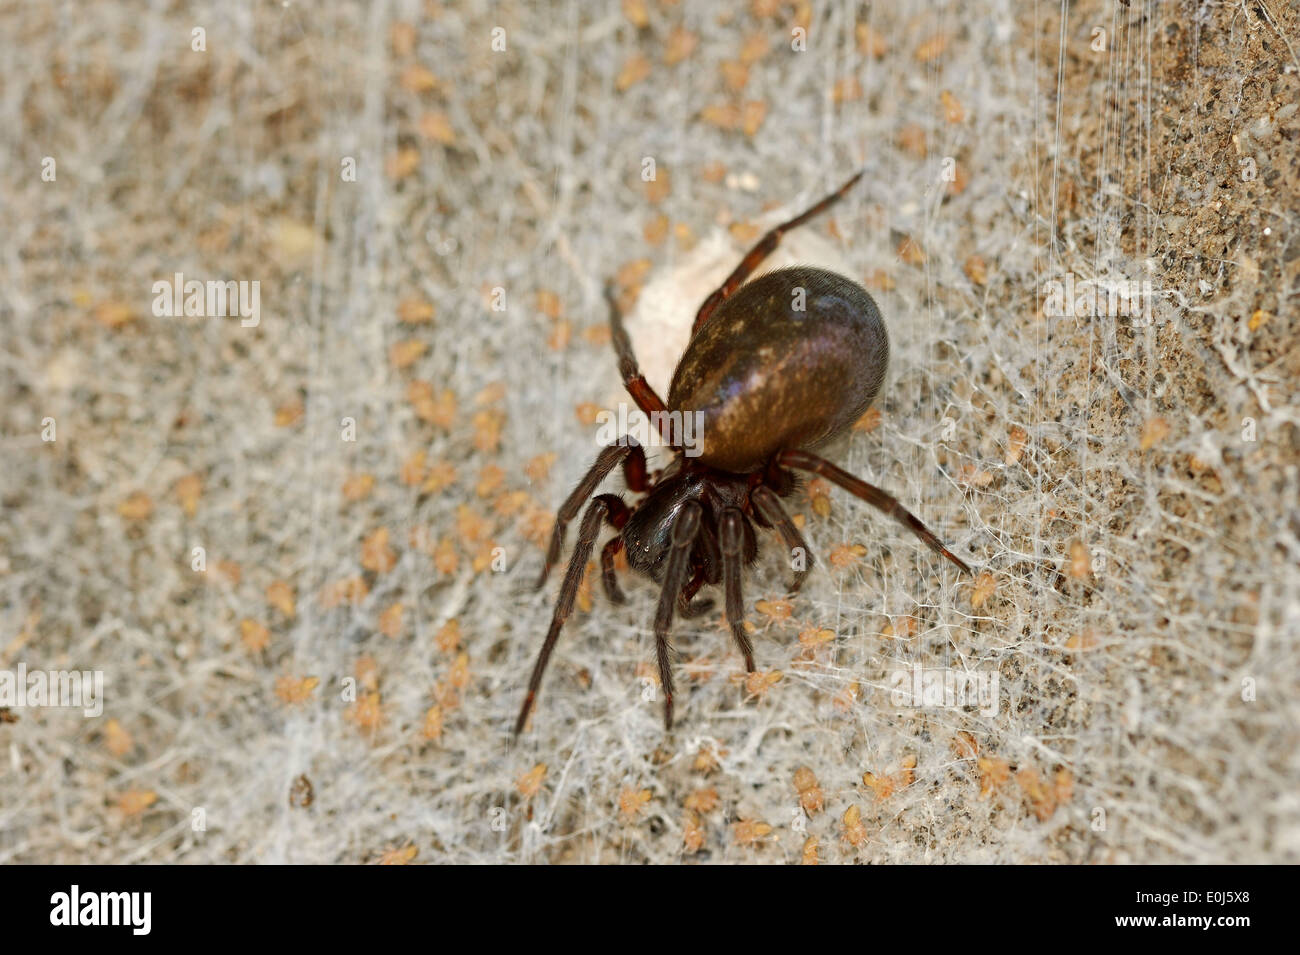 Black Lace Weaver Spider (Amaurobius ferox), female with youngs, North Rhine-Westphalia, Germany - Stock Image